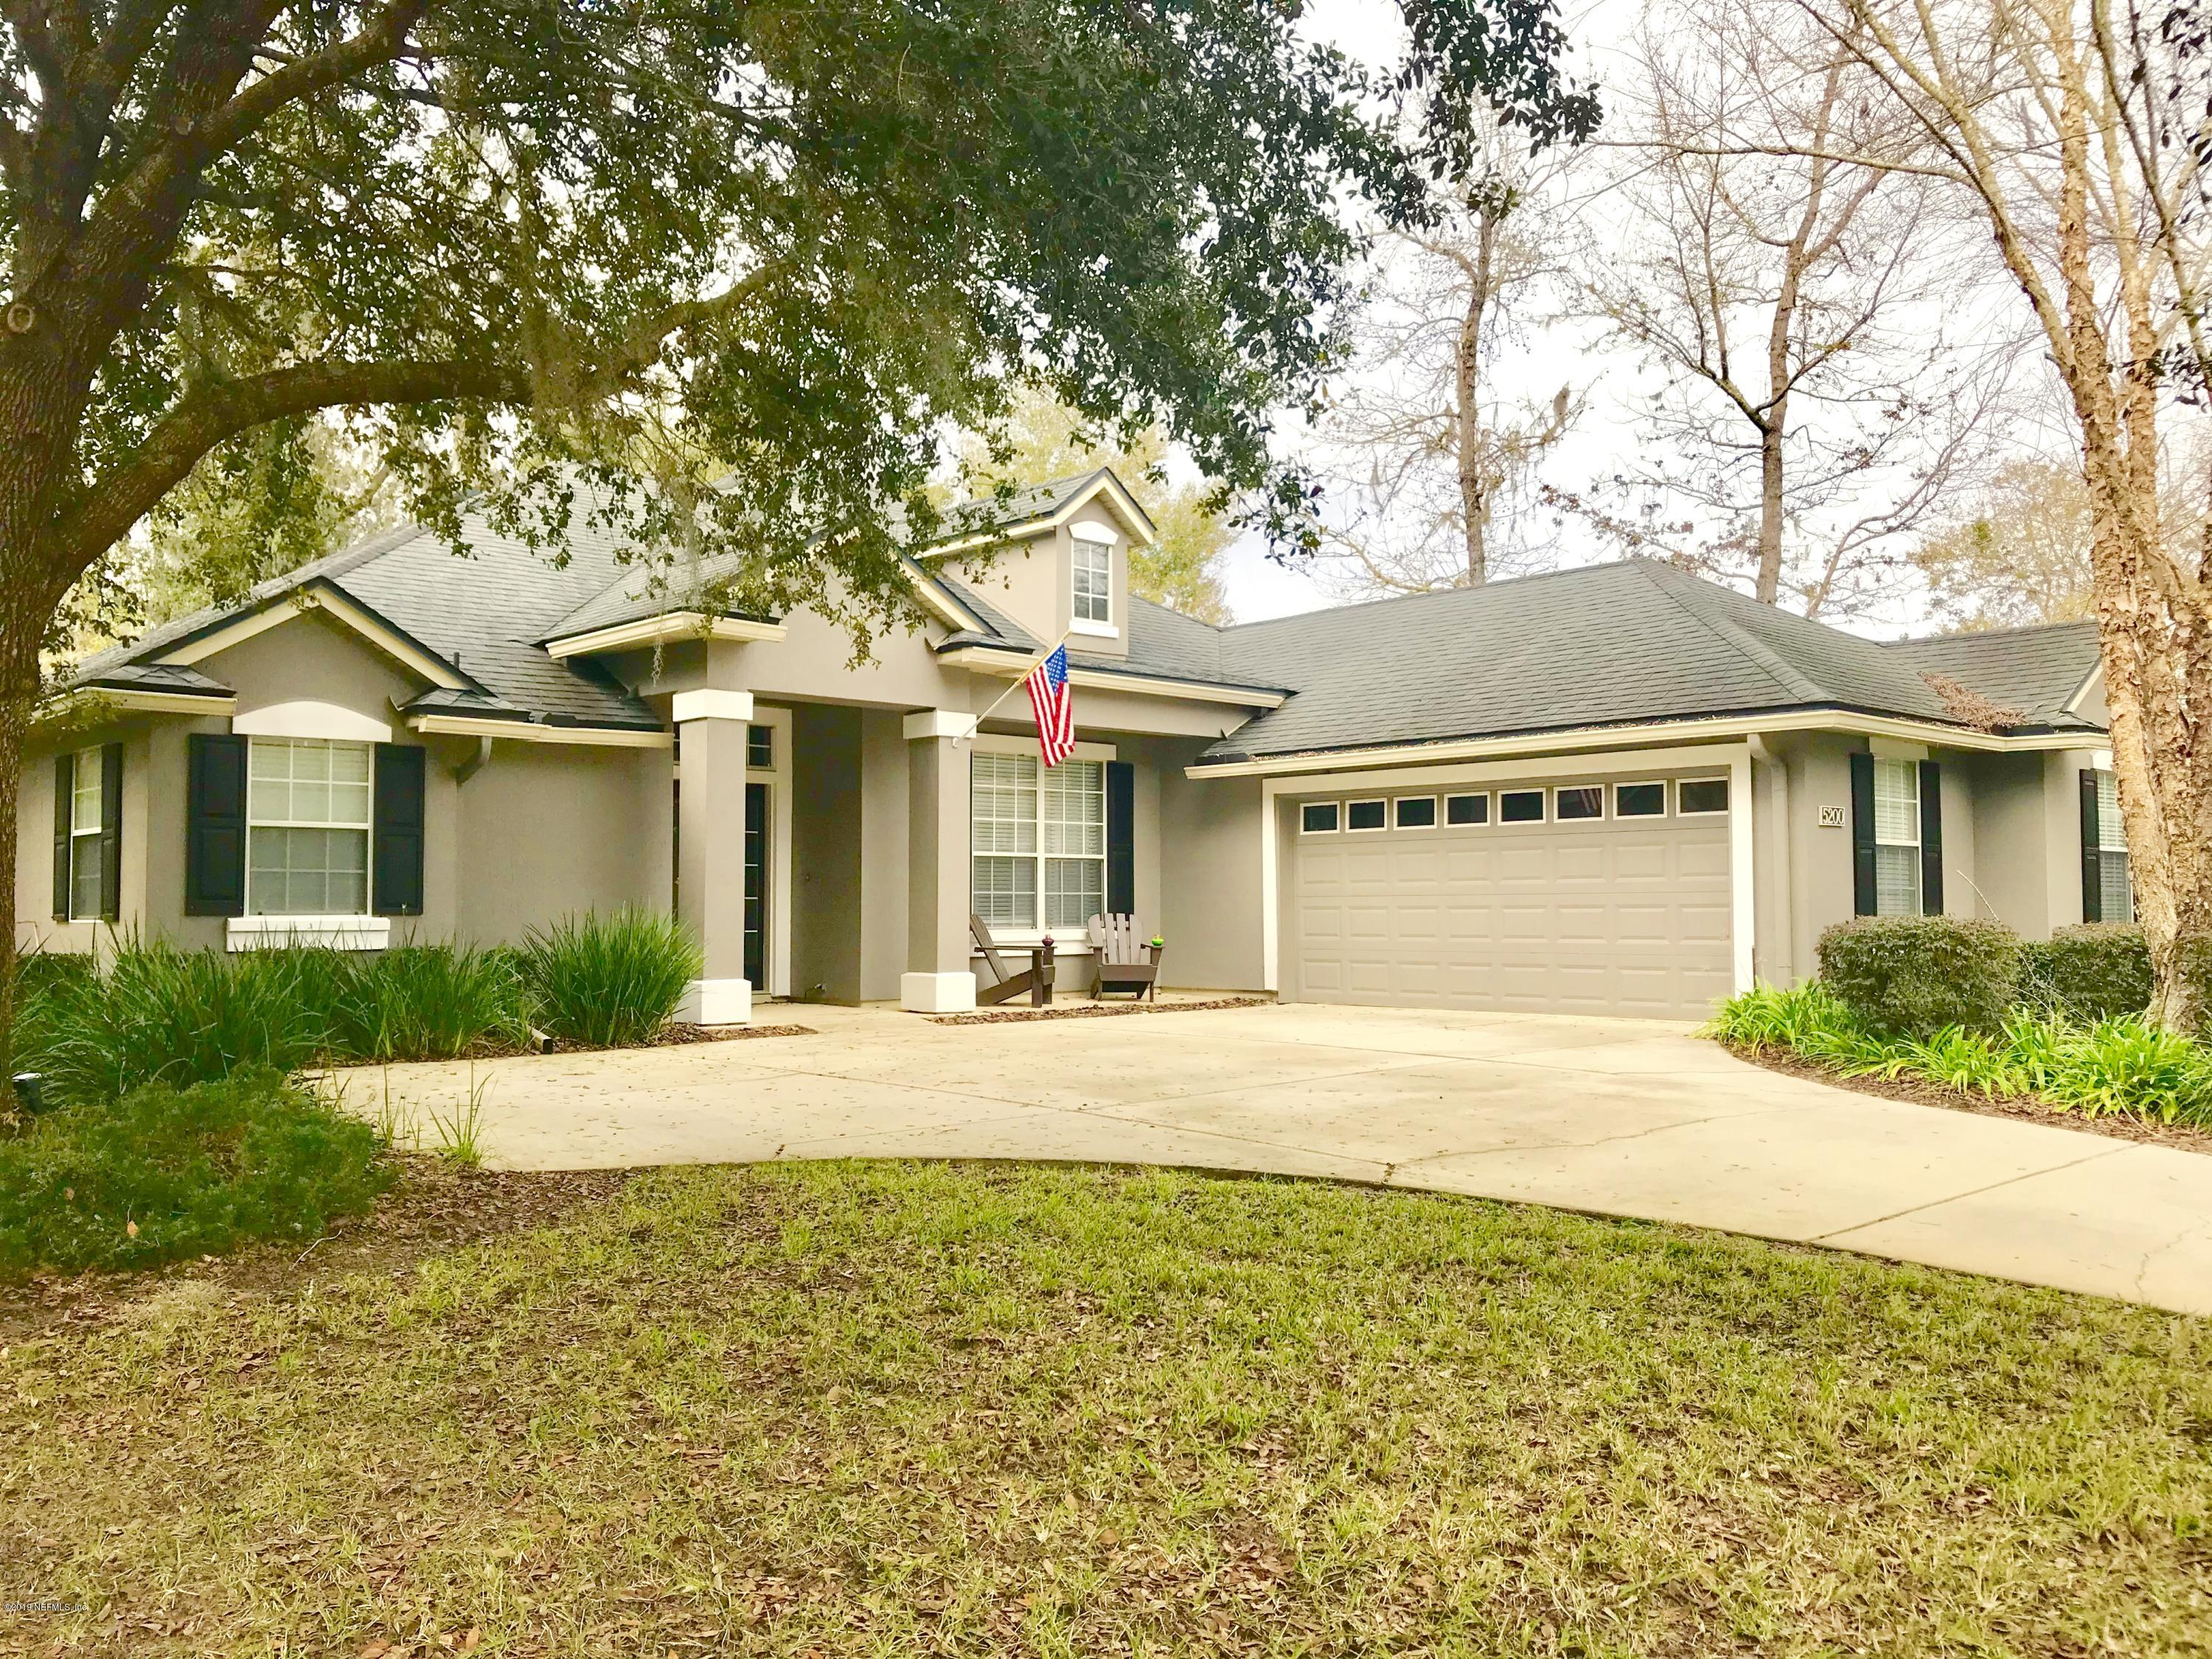 5200 COMFORT, ST AUGUSTINE, FLORIDA 32092, 4 Bedrooms Bedrooms, ,3 BathroomsBathrooms,Residential - single family,For sale,COMFORT,976987